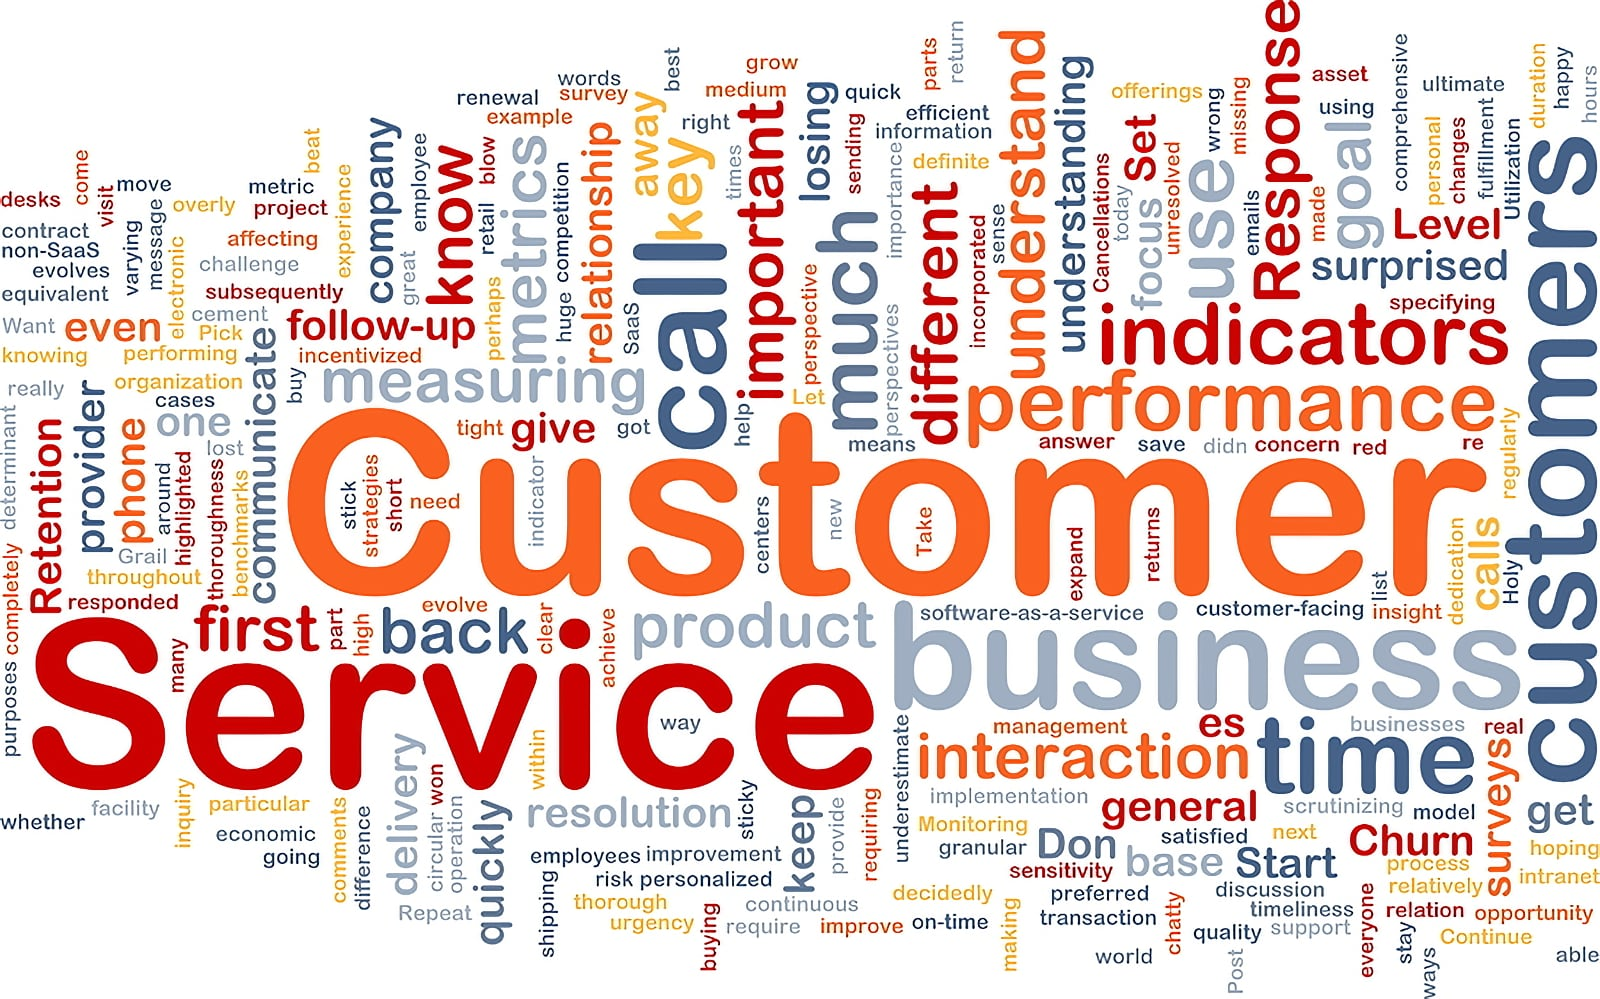 Word cloud image that is centred on the words Customer and Service, plus many other related words